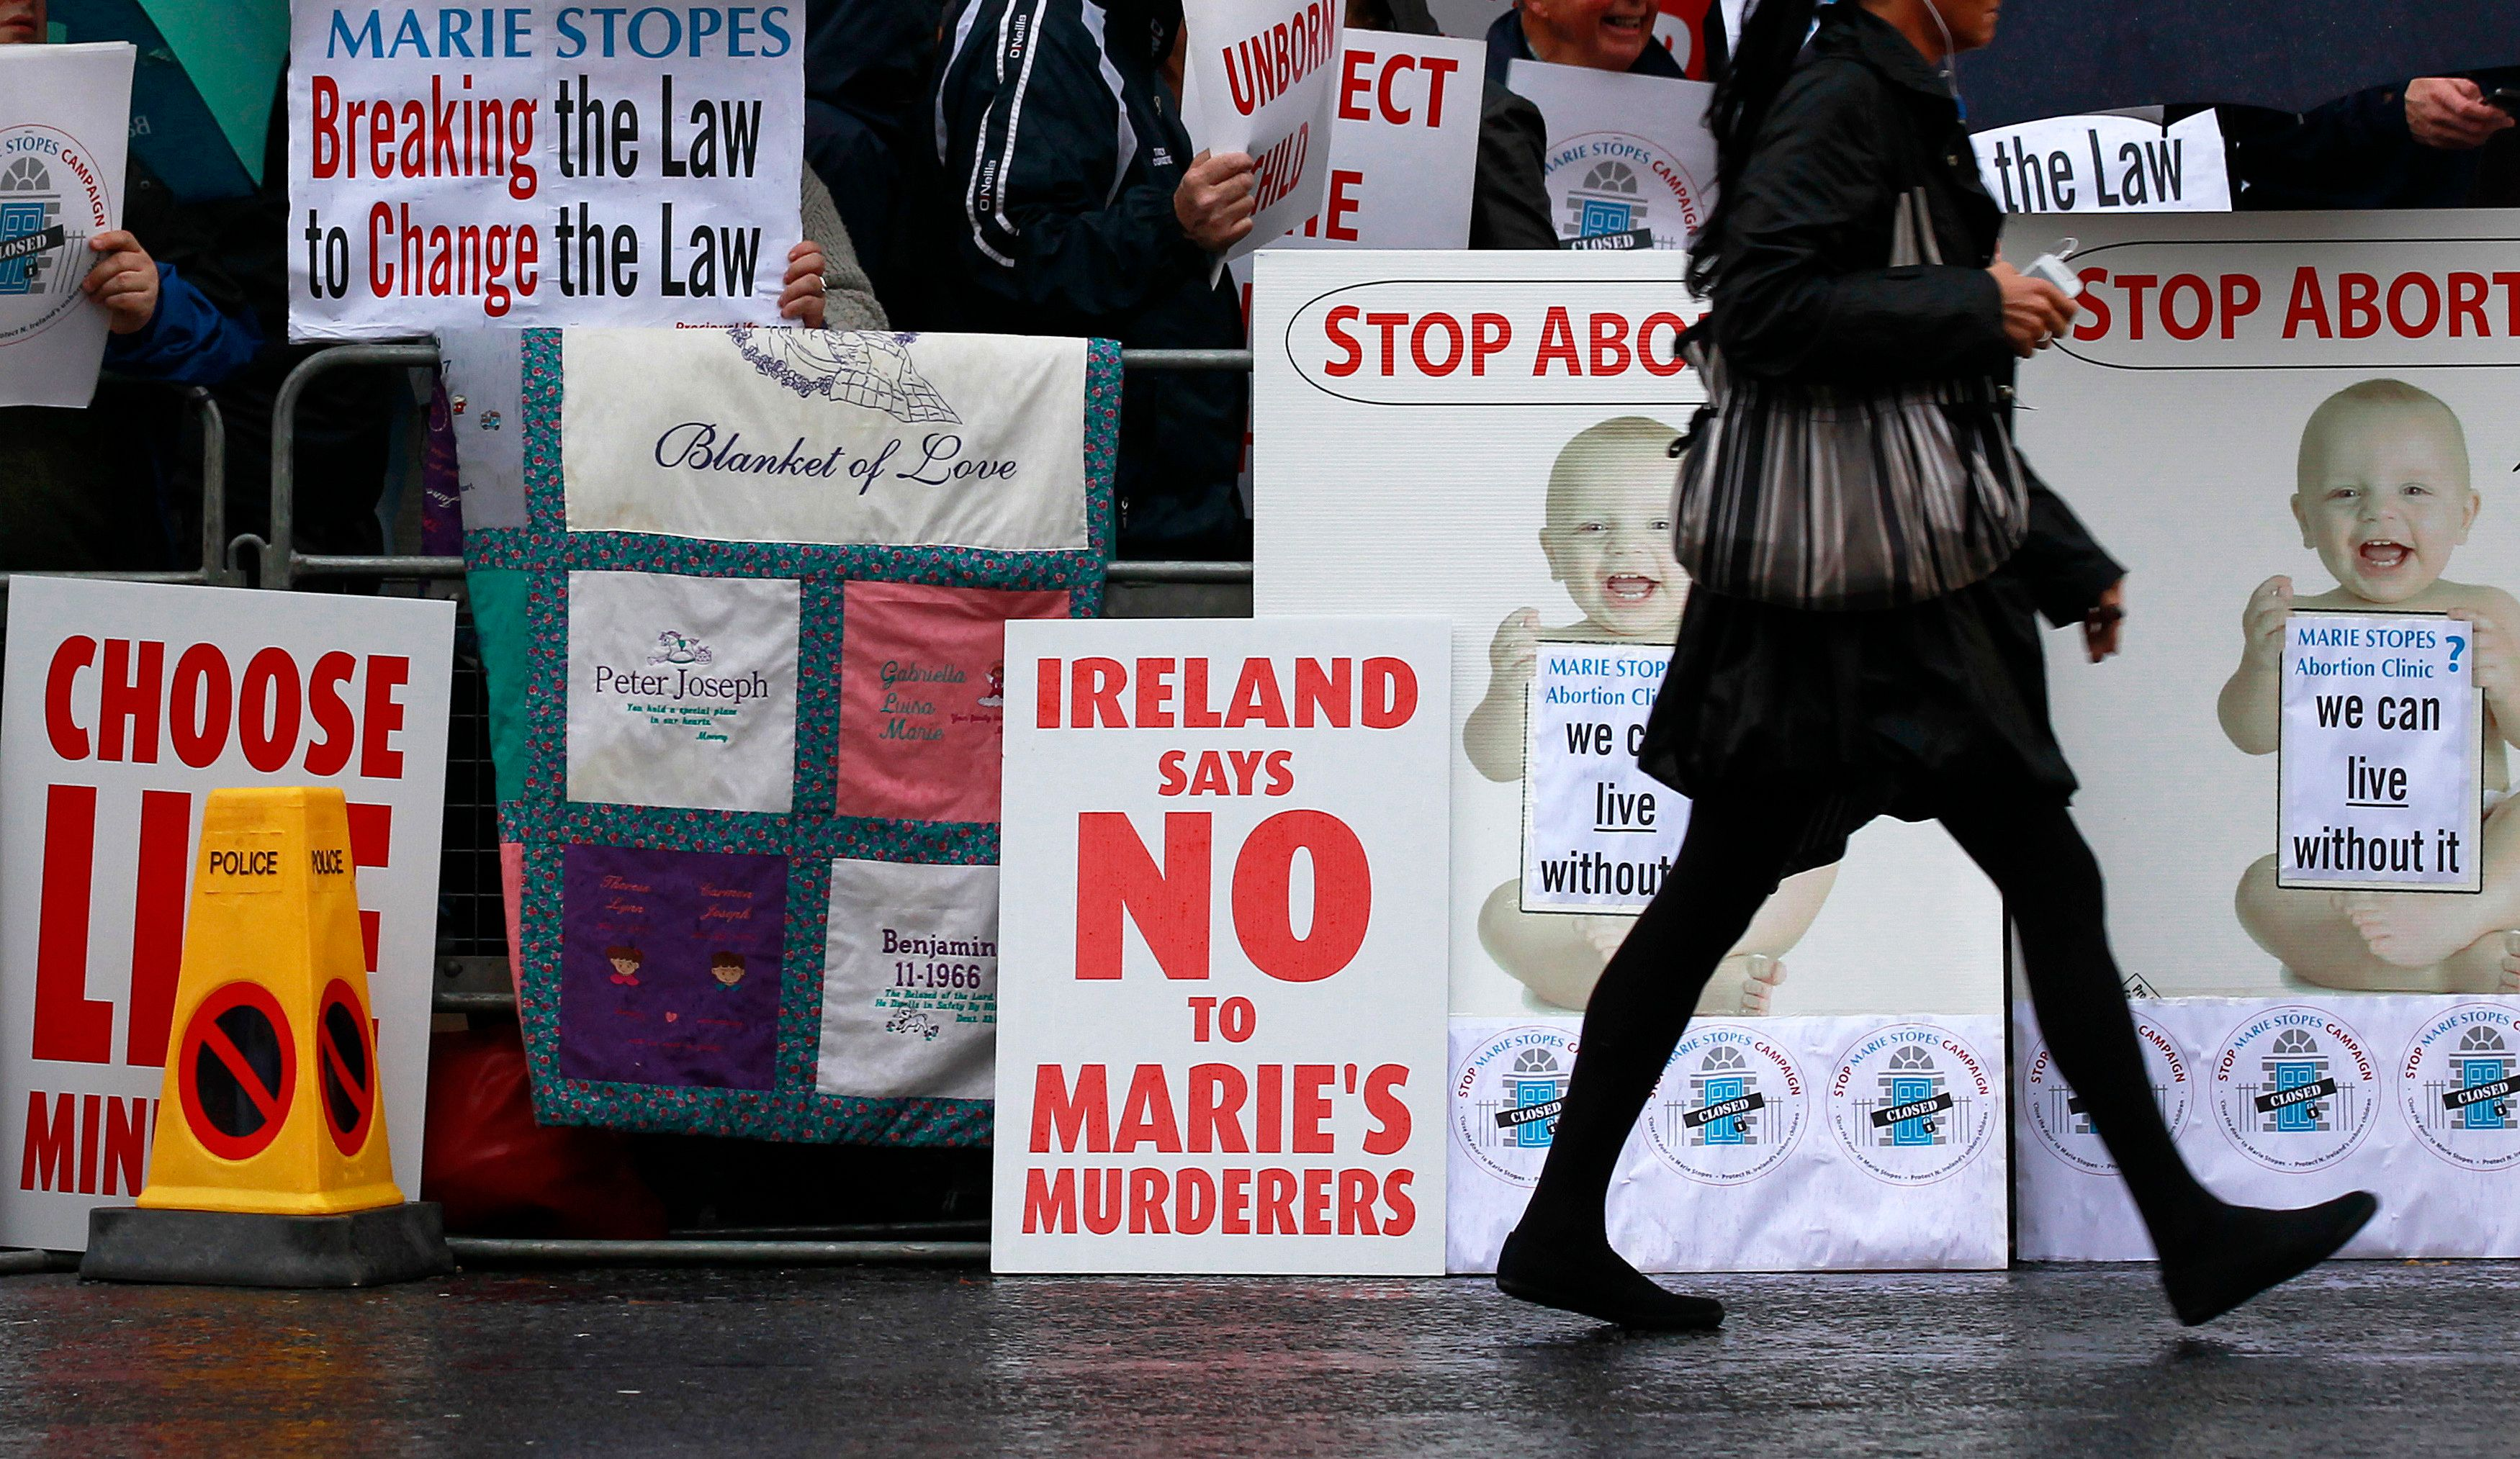 Access to abortion is illegal in Ireland even in the case of rape, incest, or a fatal fetal abnormality. Women can only acces